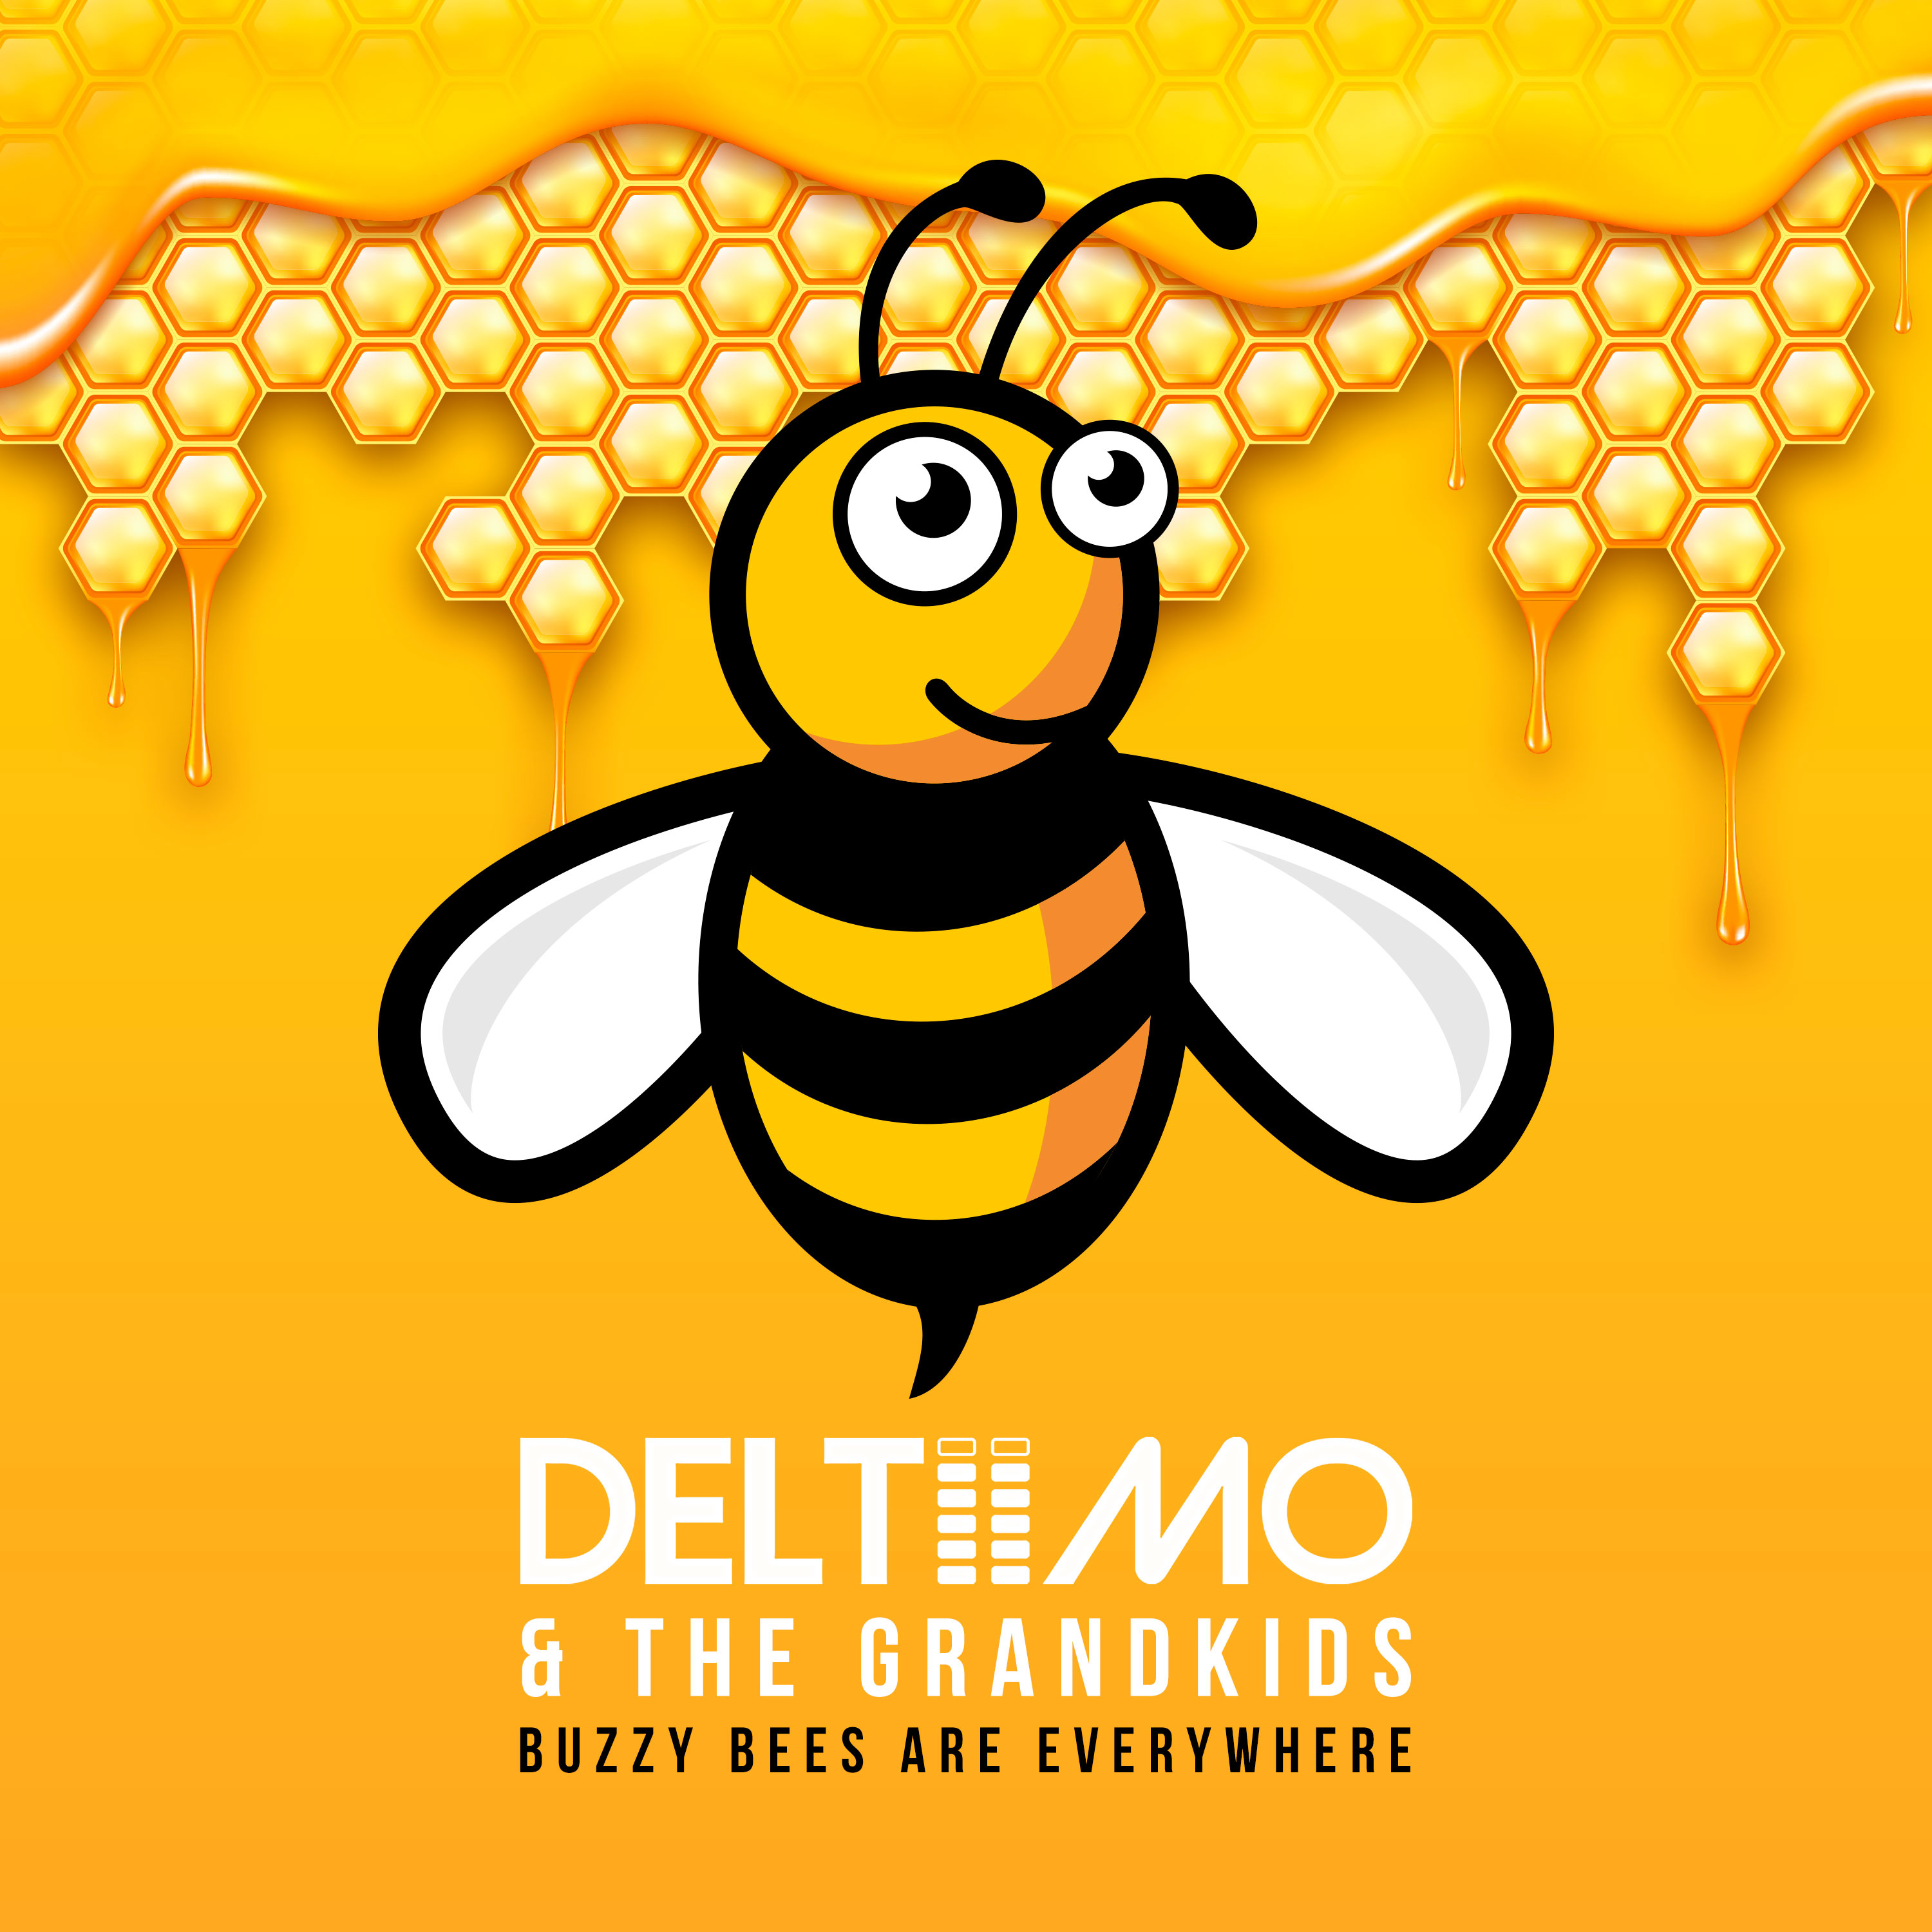 Deltiimo & The Grandkids Buzzy Bees Are Everywhere